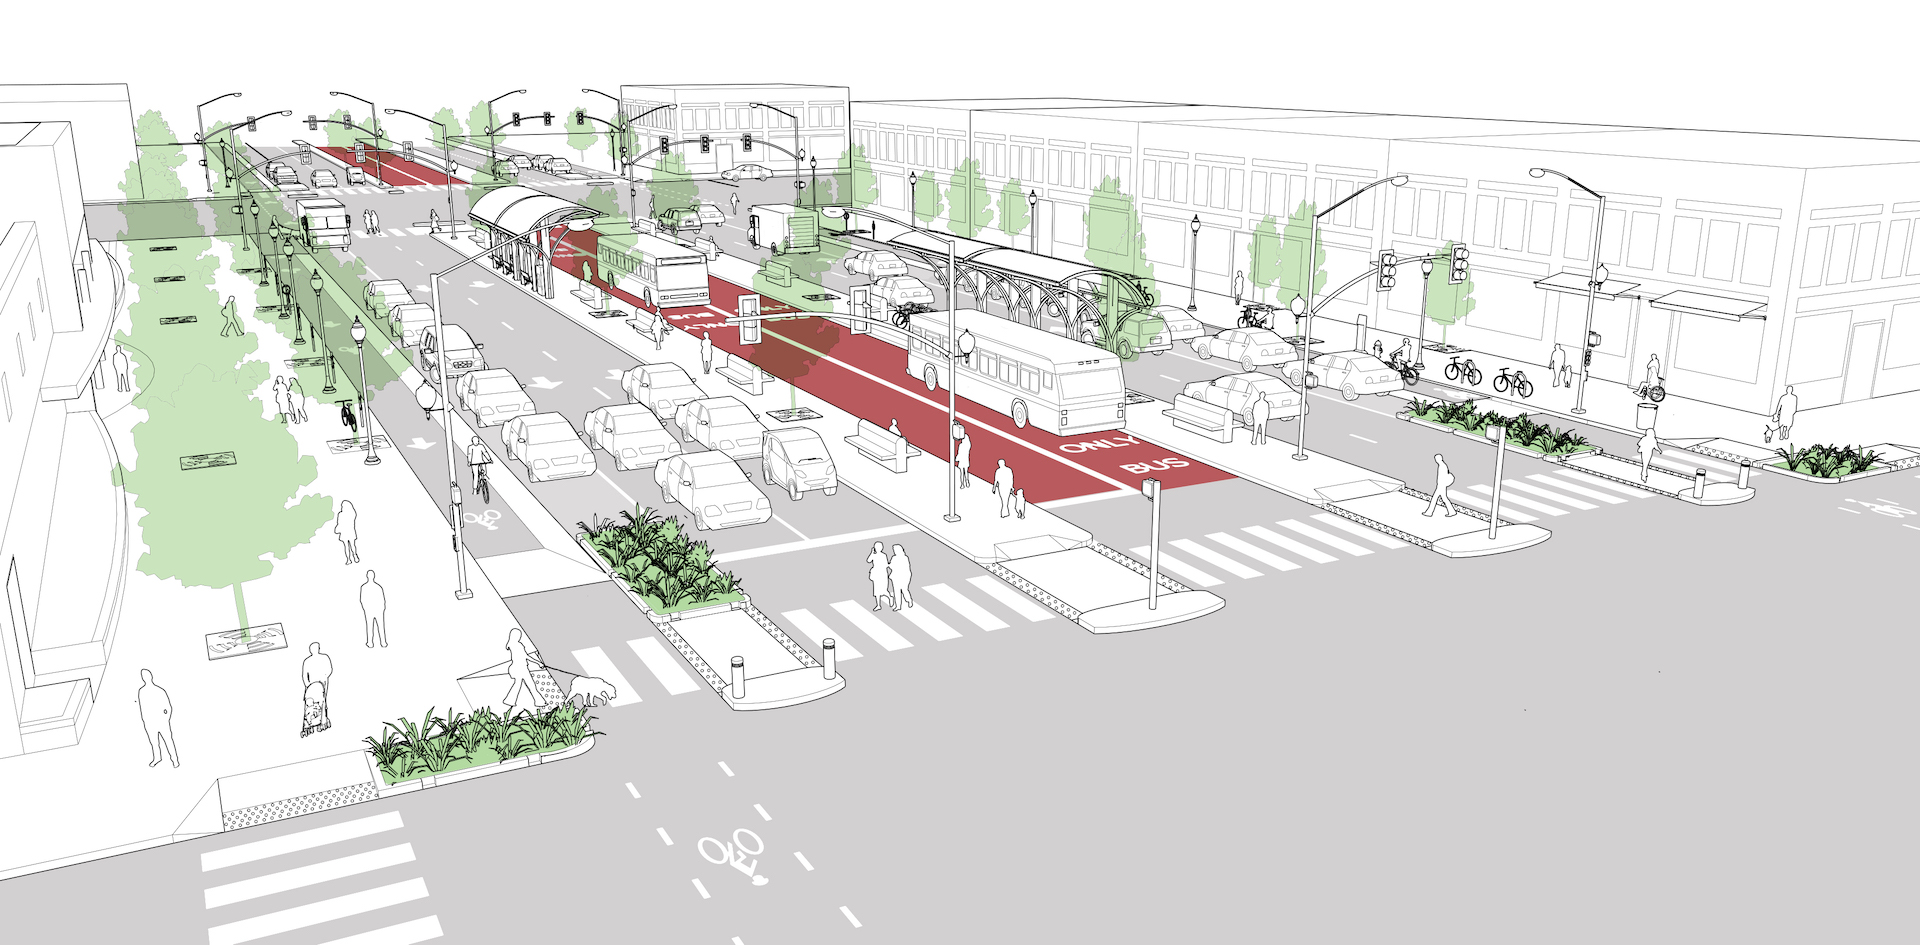 NACTO design guide boulevard center running bus lanes with protected curb cycle track